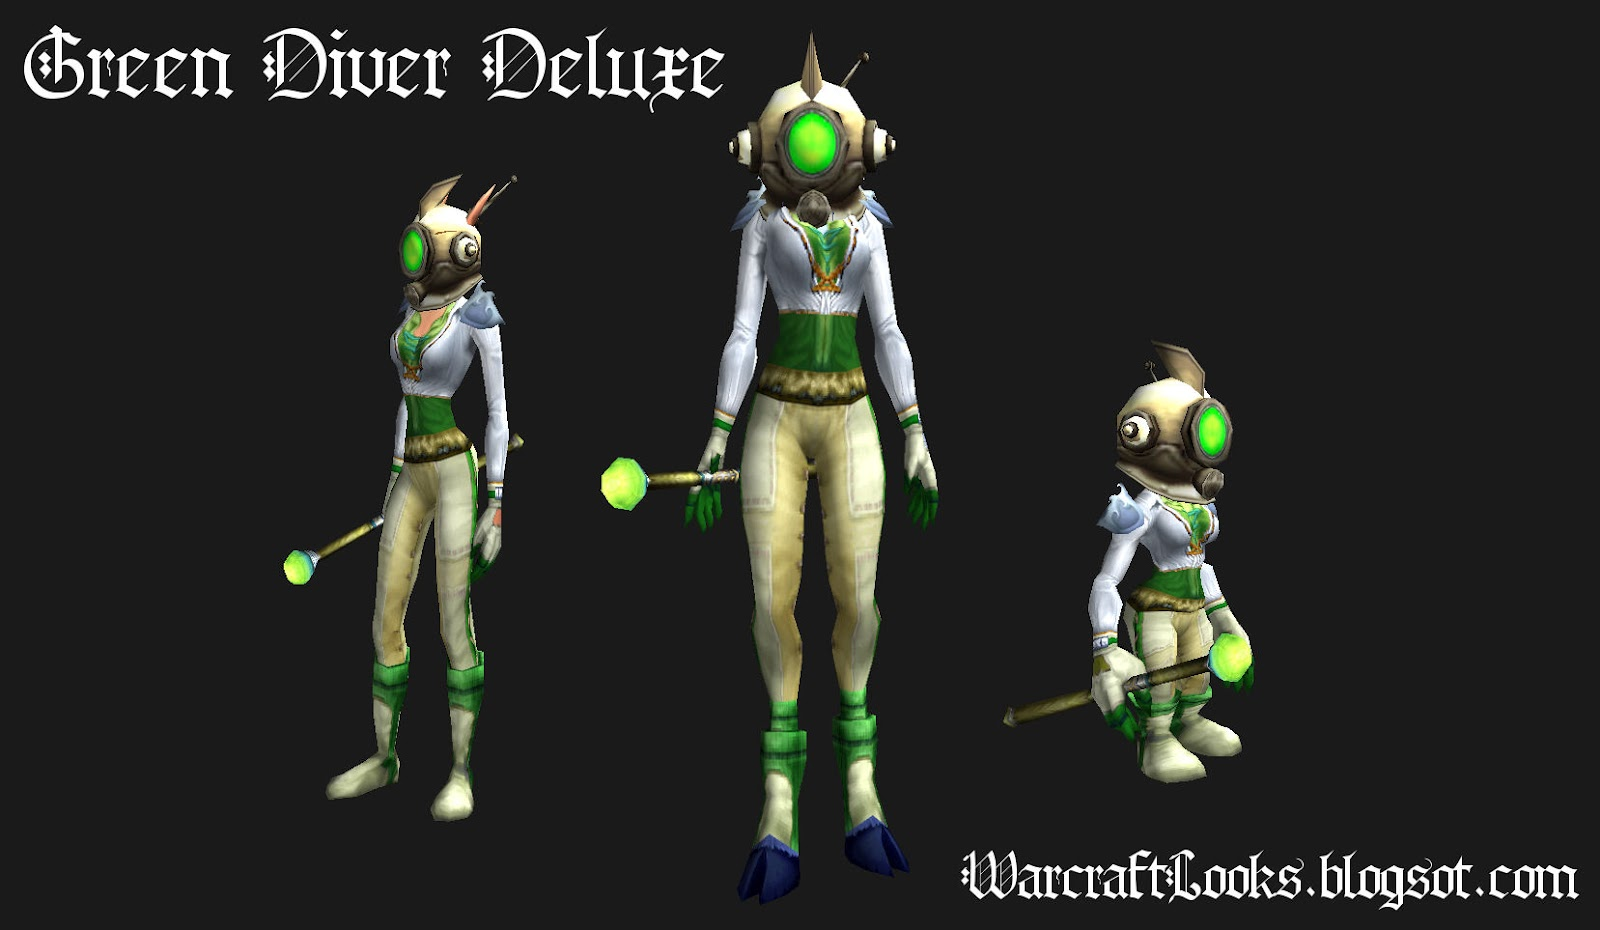 Cloth Transmog Outfit - \ Green Diver Deluxe\  & Warcraft Looks: Cloth Transmog Outfit - \